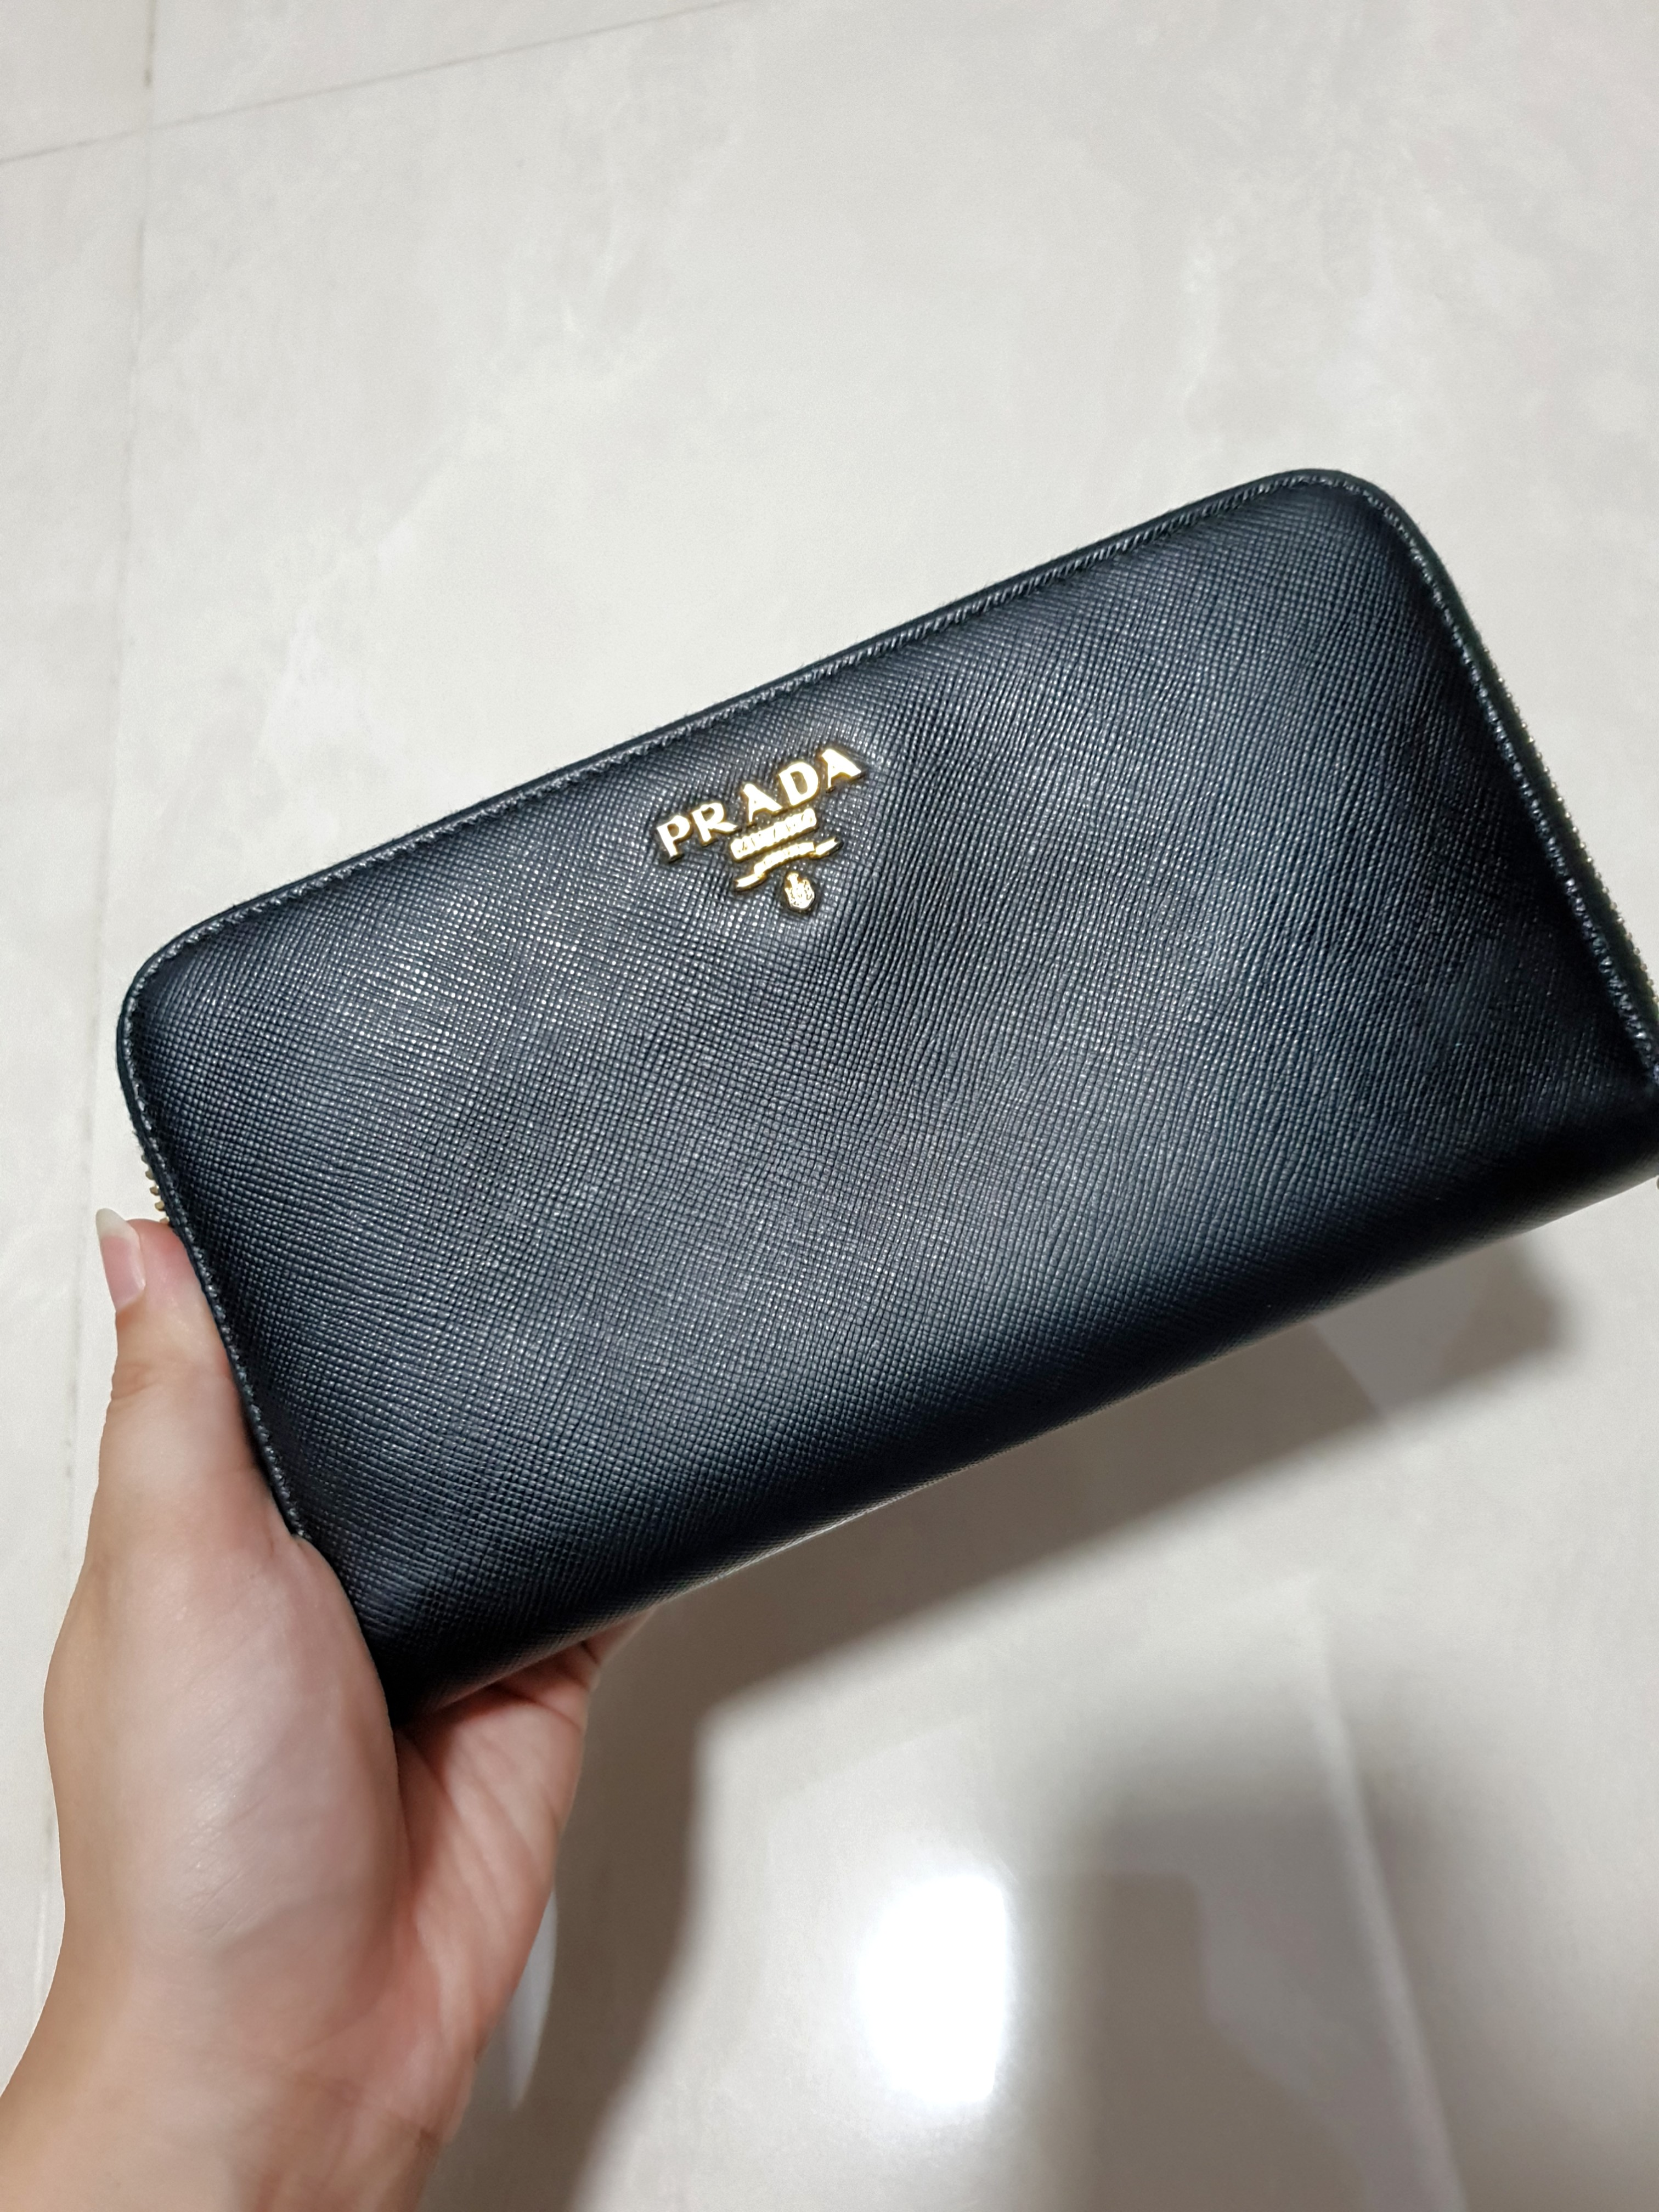 fb1adcc66329 Prada saffiano leather long wallet genuine, Luxury, Bags & Wallets ...